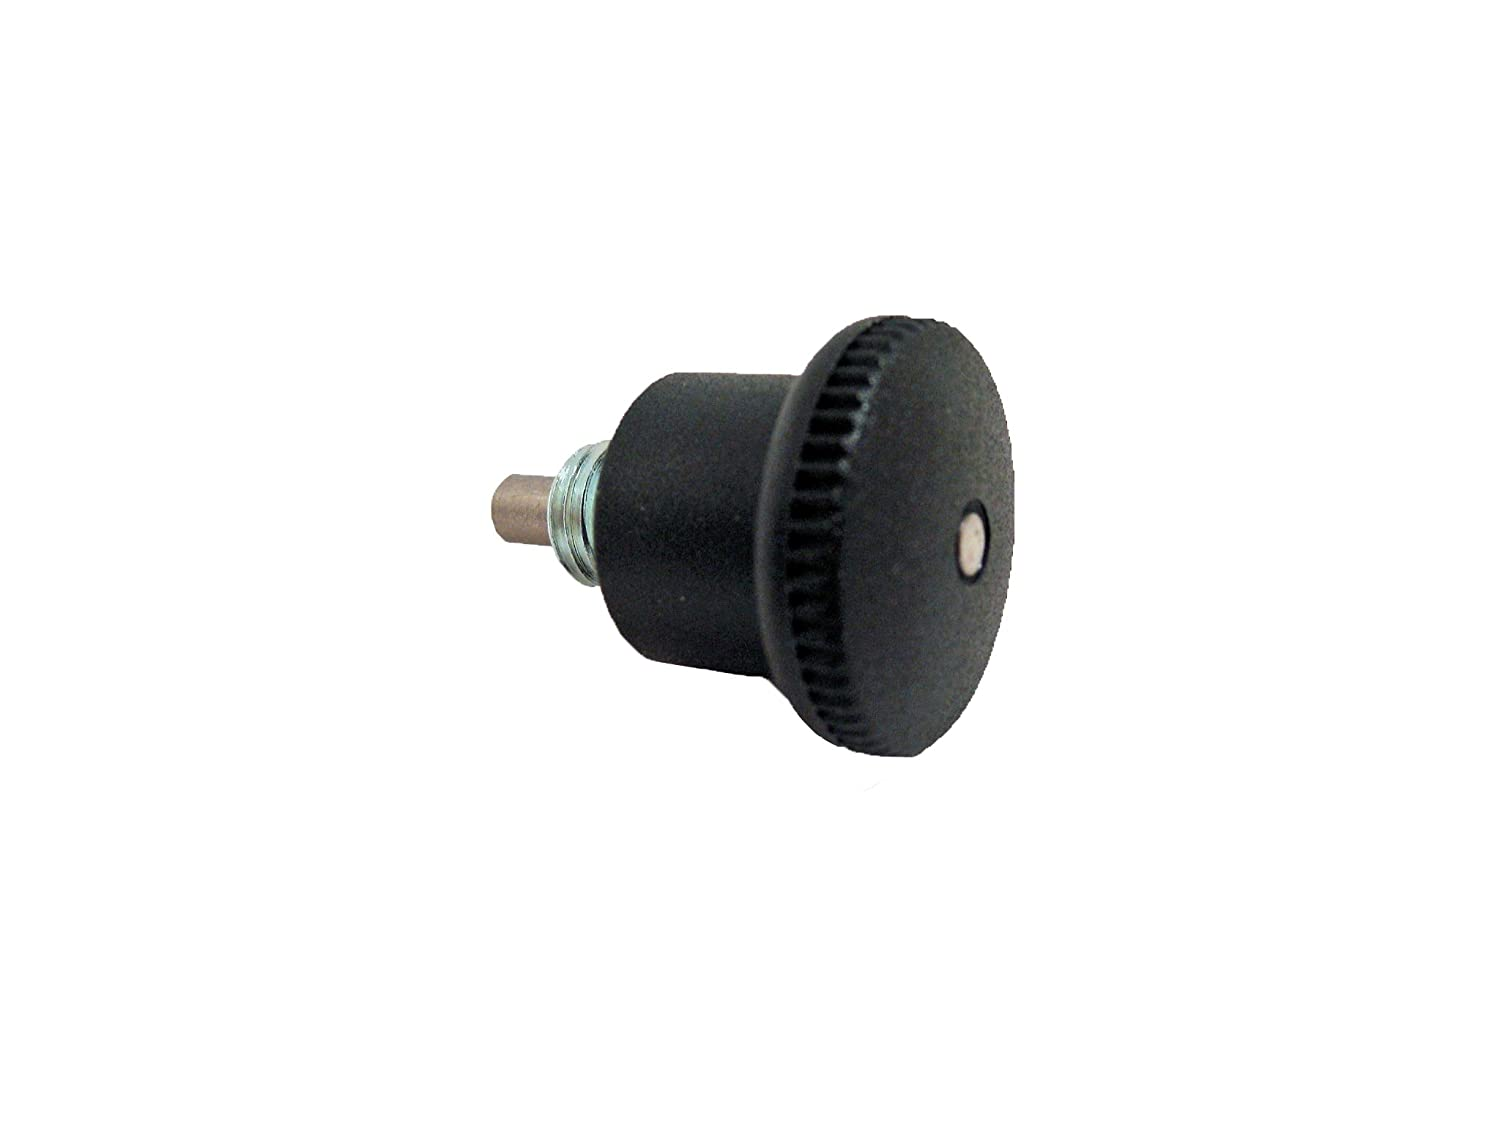 12mm Thread Length 8mm Diameter GN 822.6 Steel Lock-Out Type C Metric Size Mini Indexing Plunger with Hidden Lock Mechanism M16 x 1.5mm Thread Size